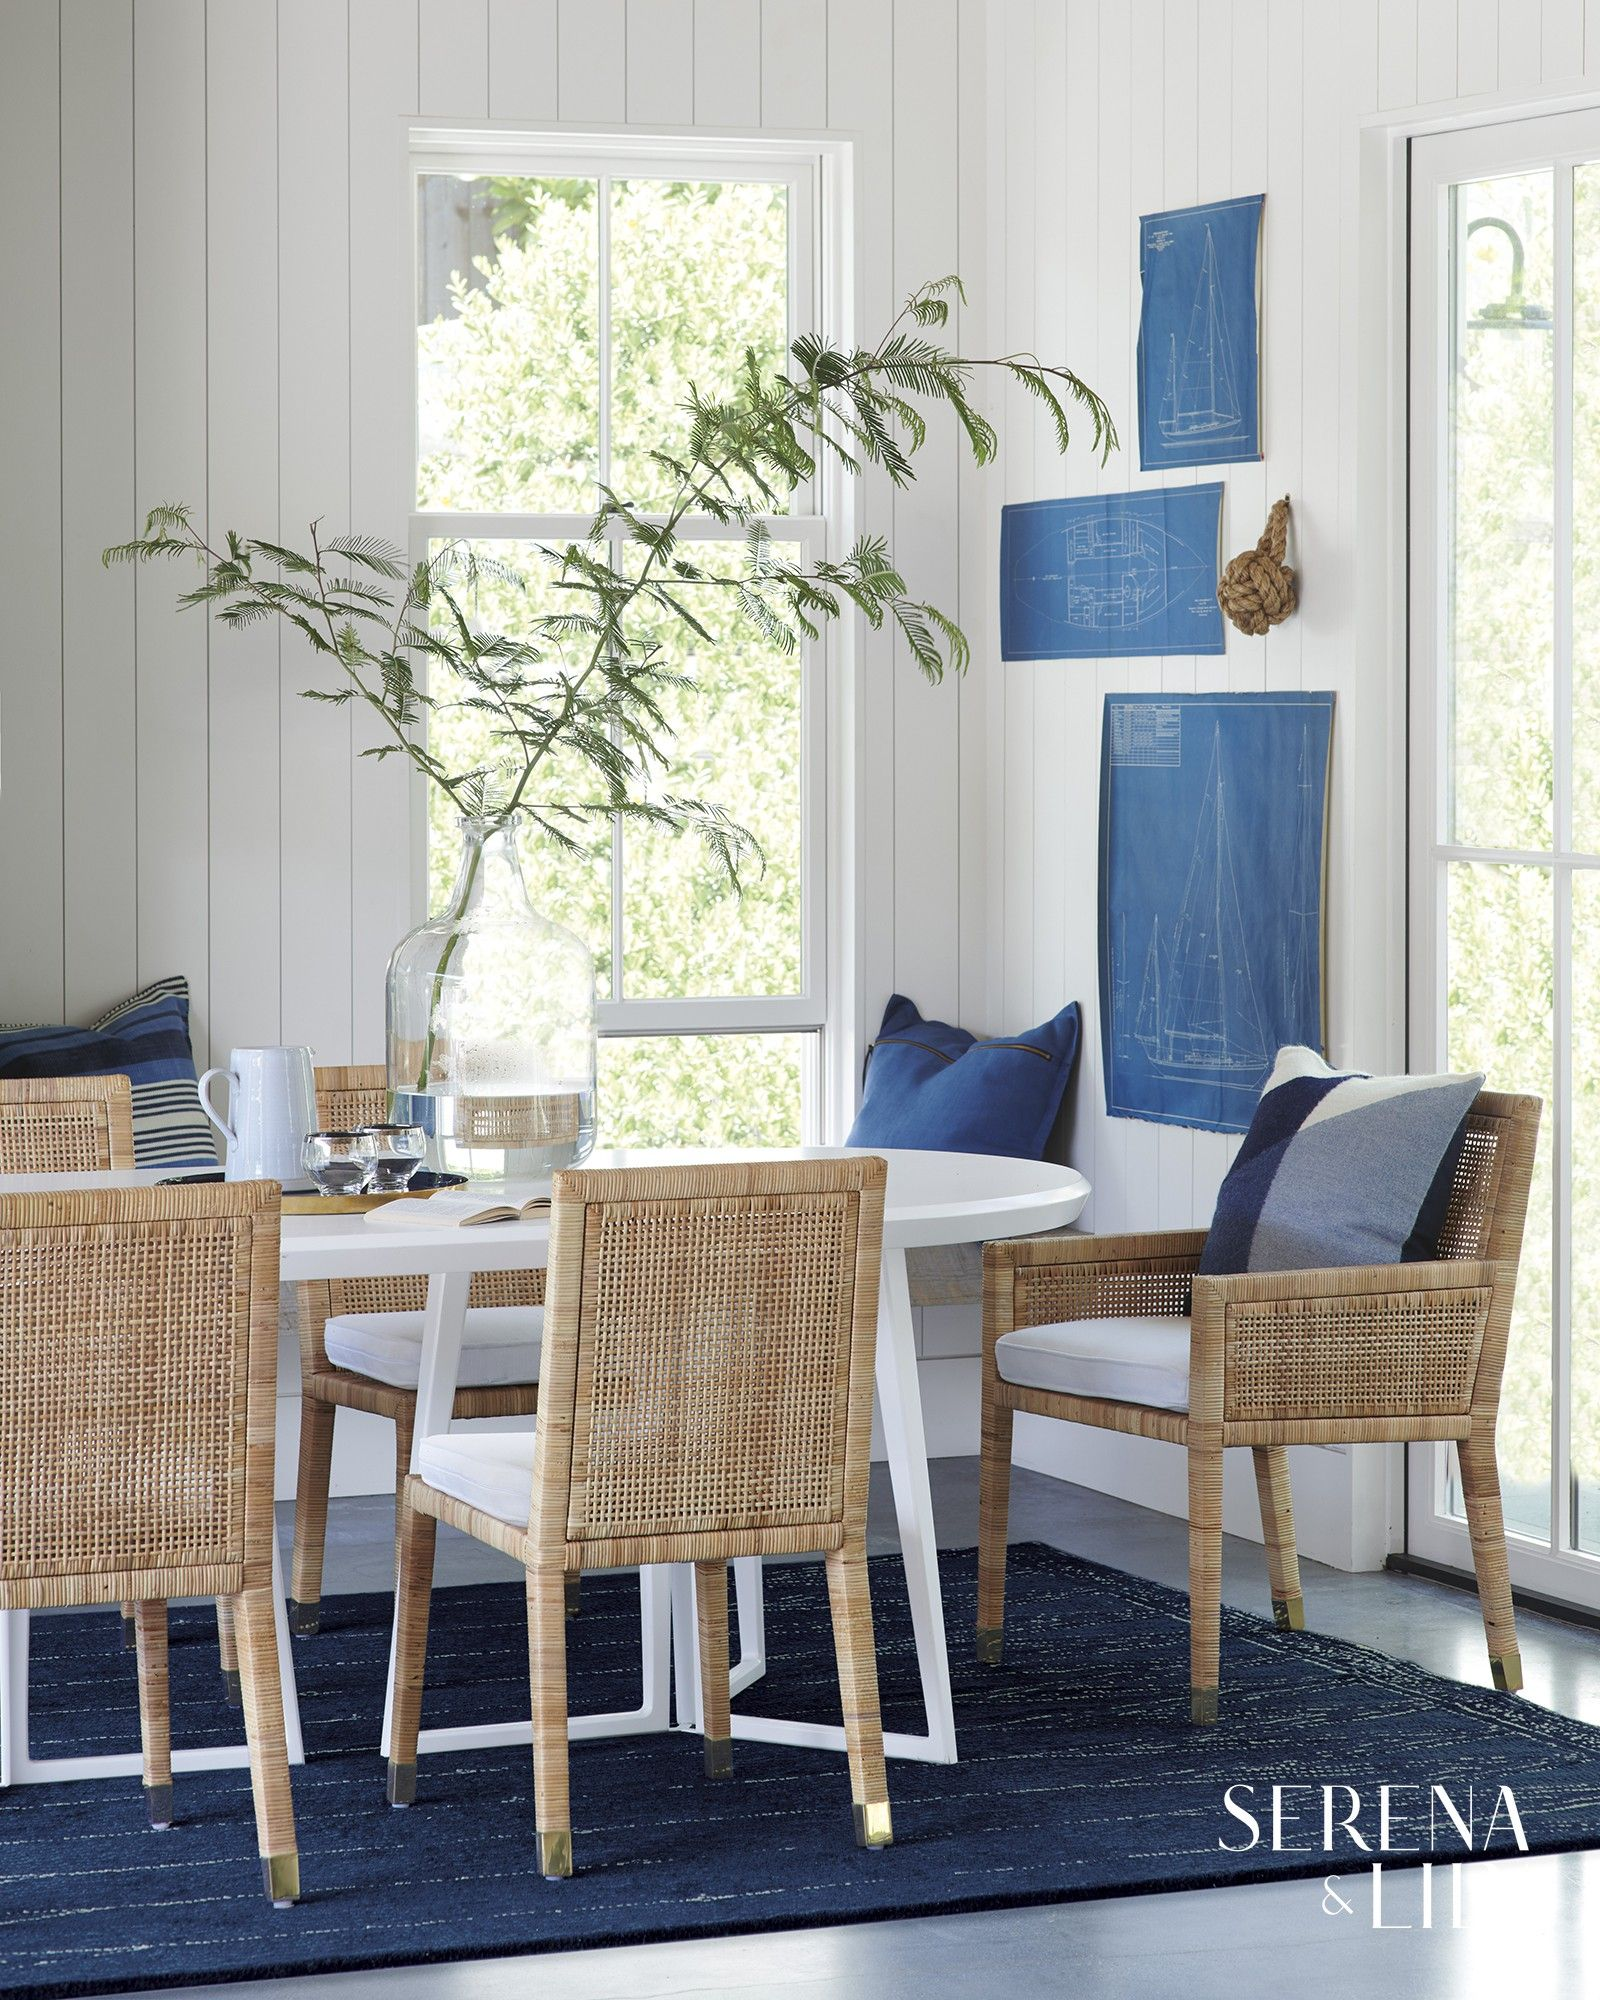 We Love How Our Oval Table Softens The Angles In This Blue And White Nautical Dining Room A G Coastal Dining Room Nautical Dining Rooms Oval Dining Room Table